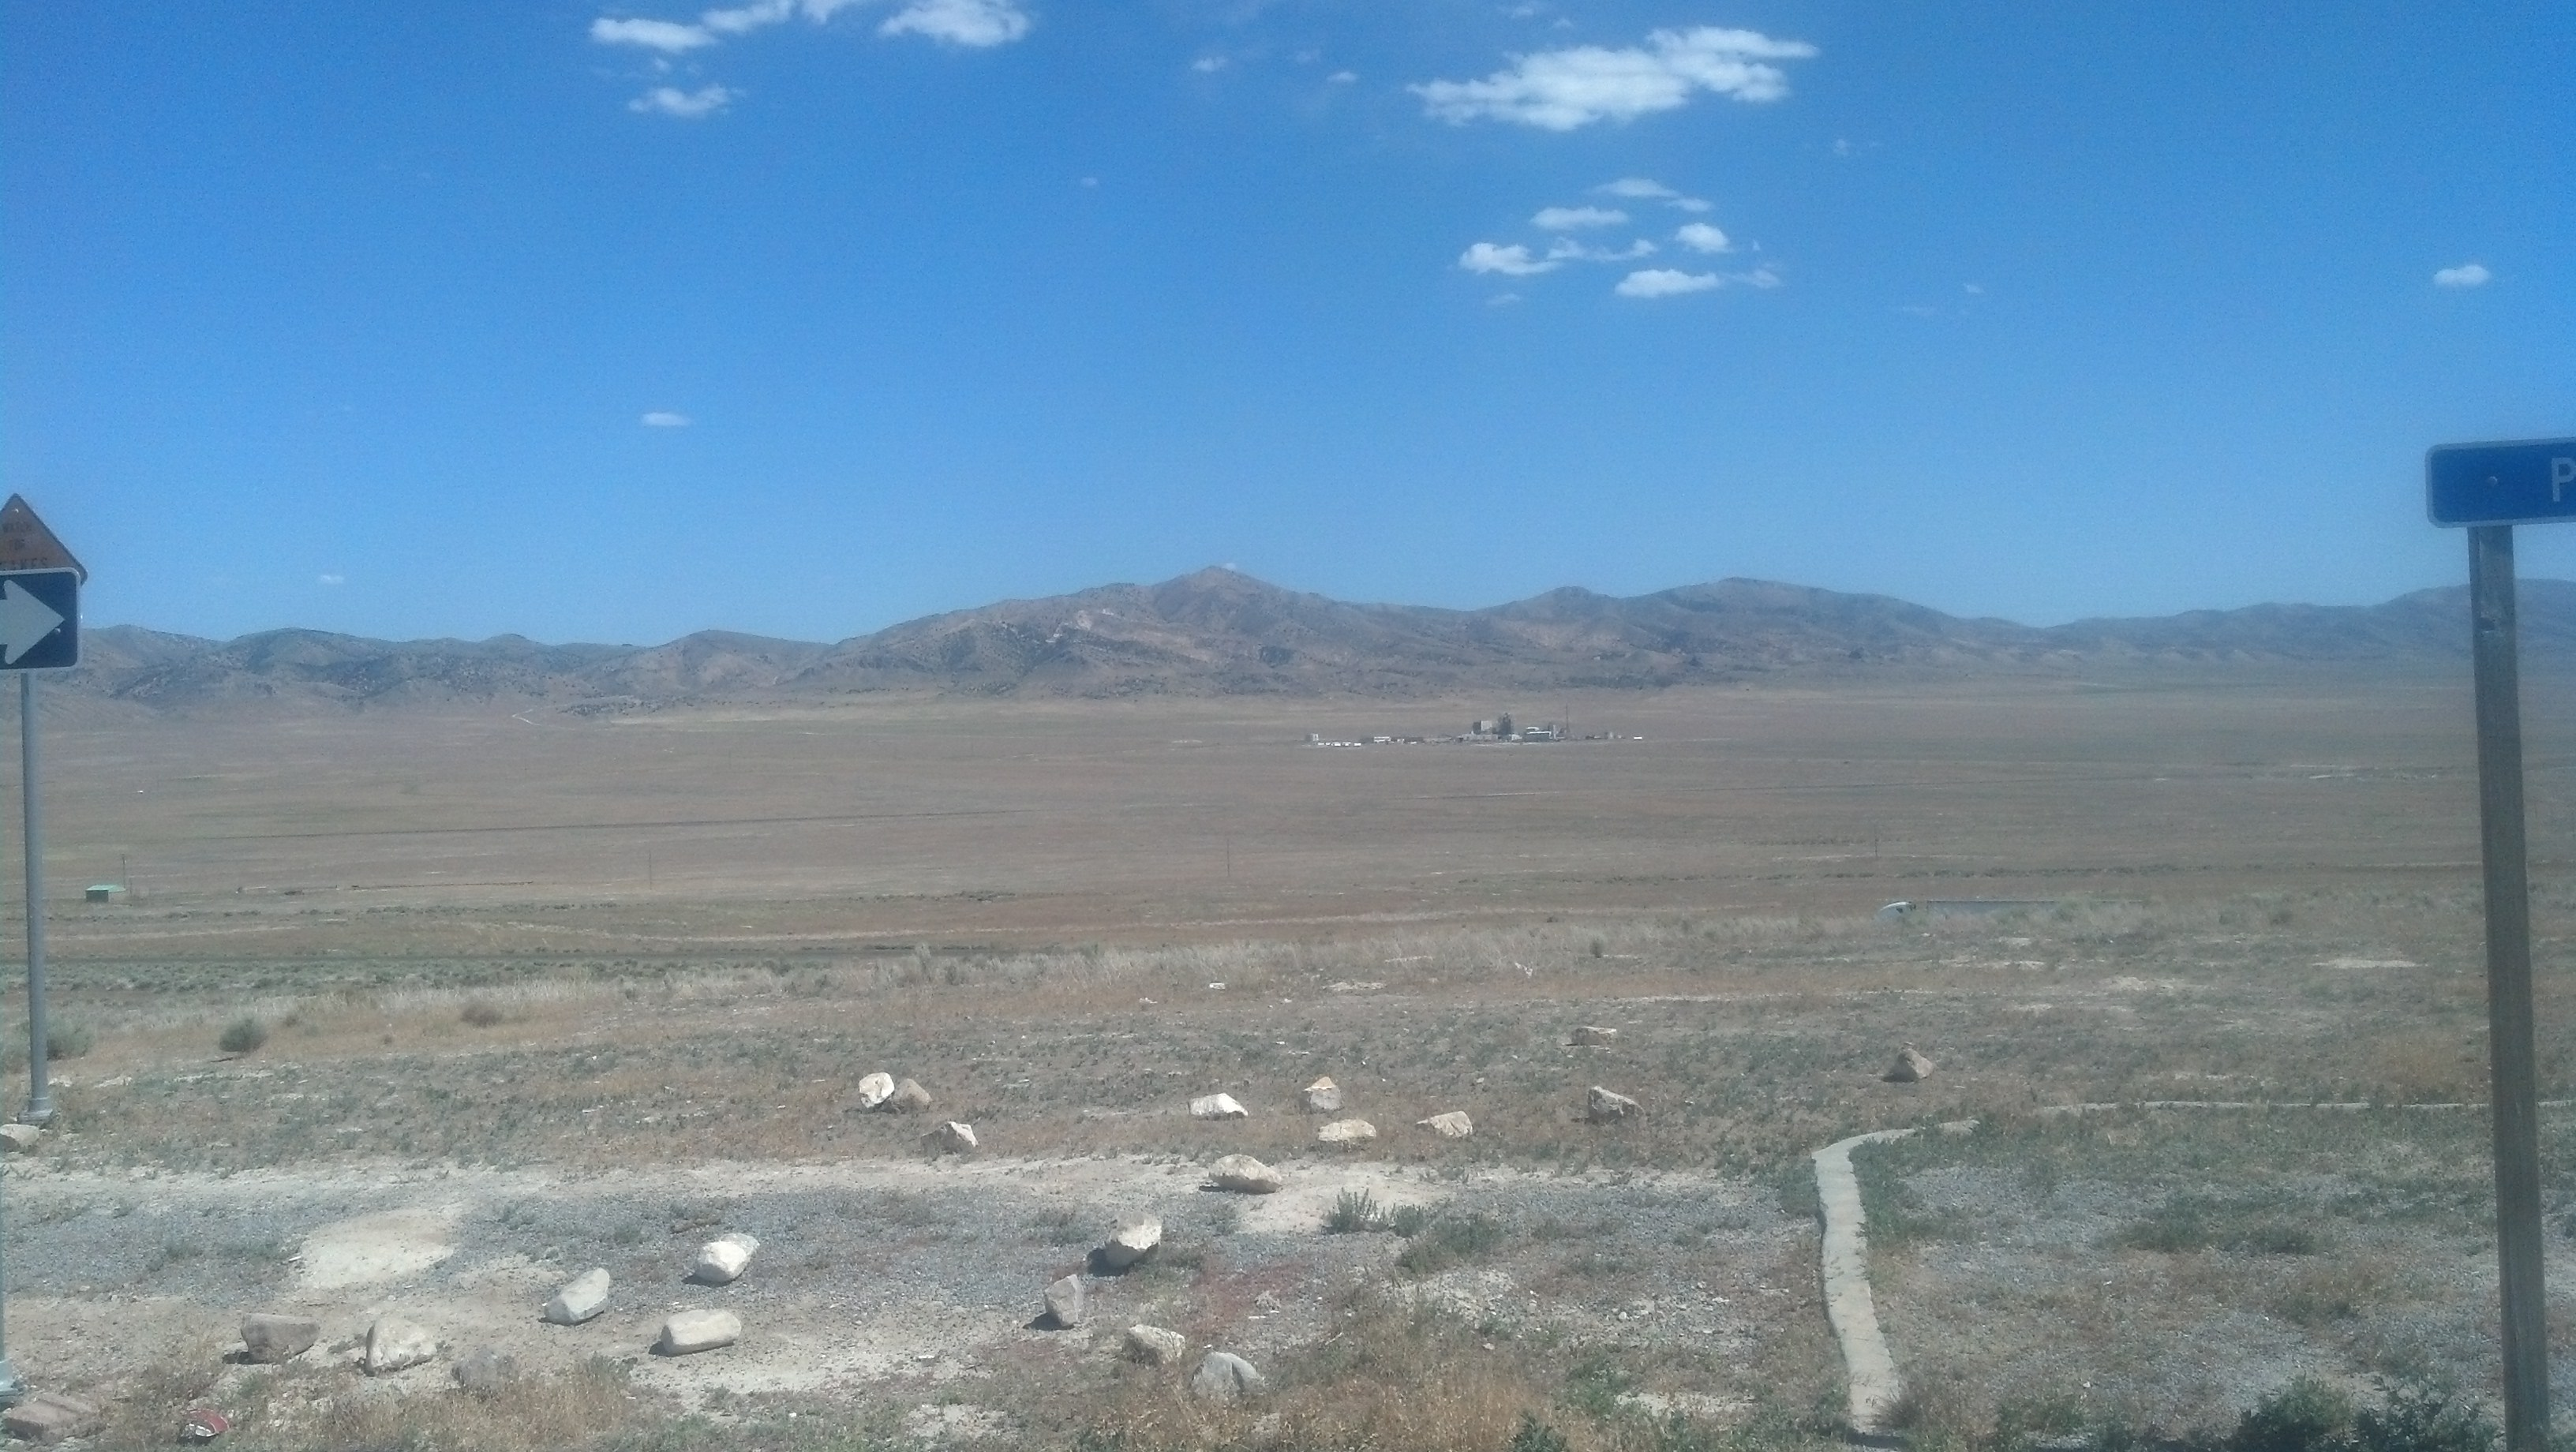 Avoiding Tractionless Grit And Dust Devils In The Great Salt Lake